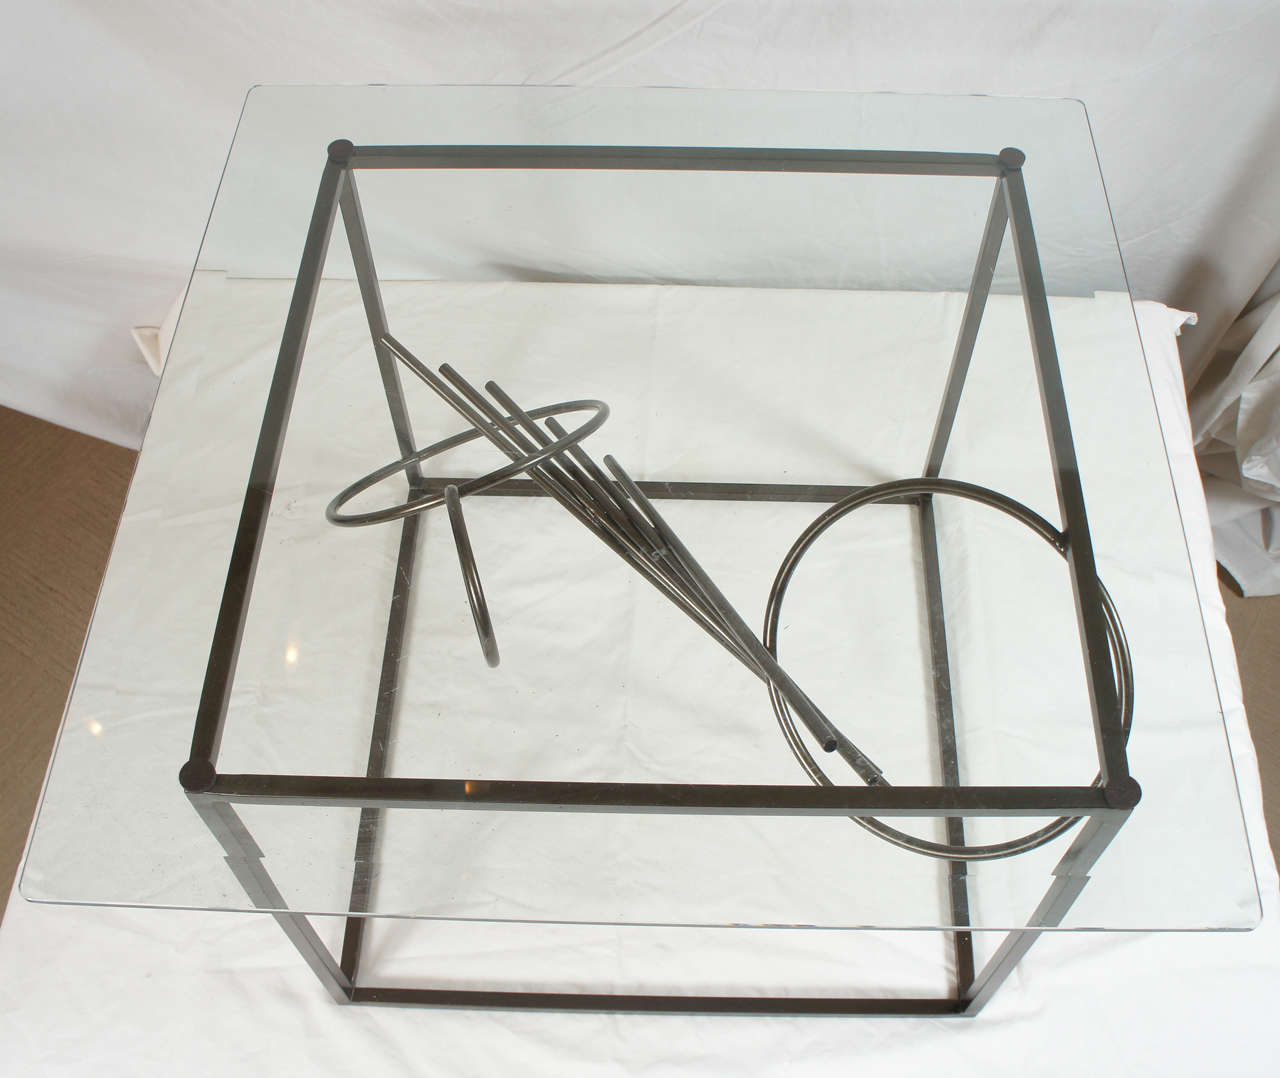 Powder-Coated Original Custom-Made in America, One of a Kind Sculptural Table by Lou Blass For Sale